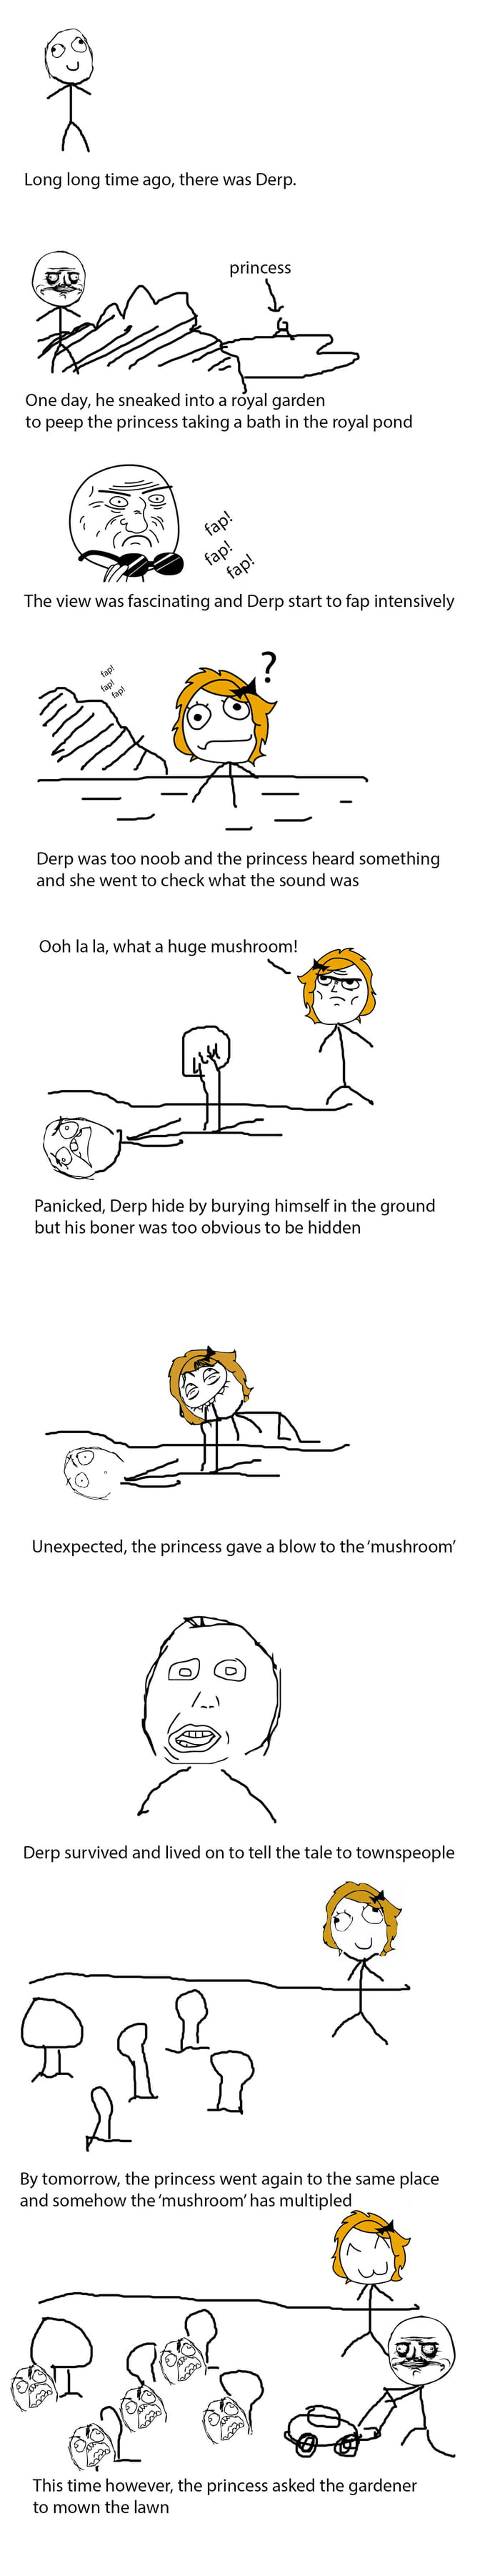 The Tale of Lucky Derp